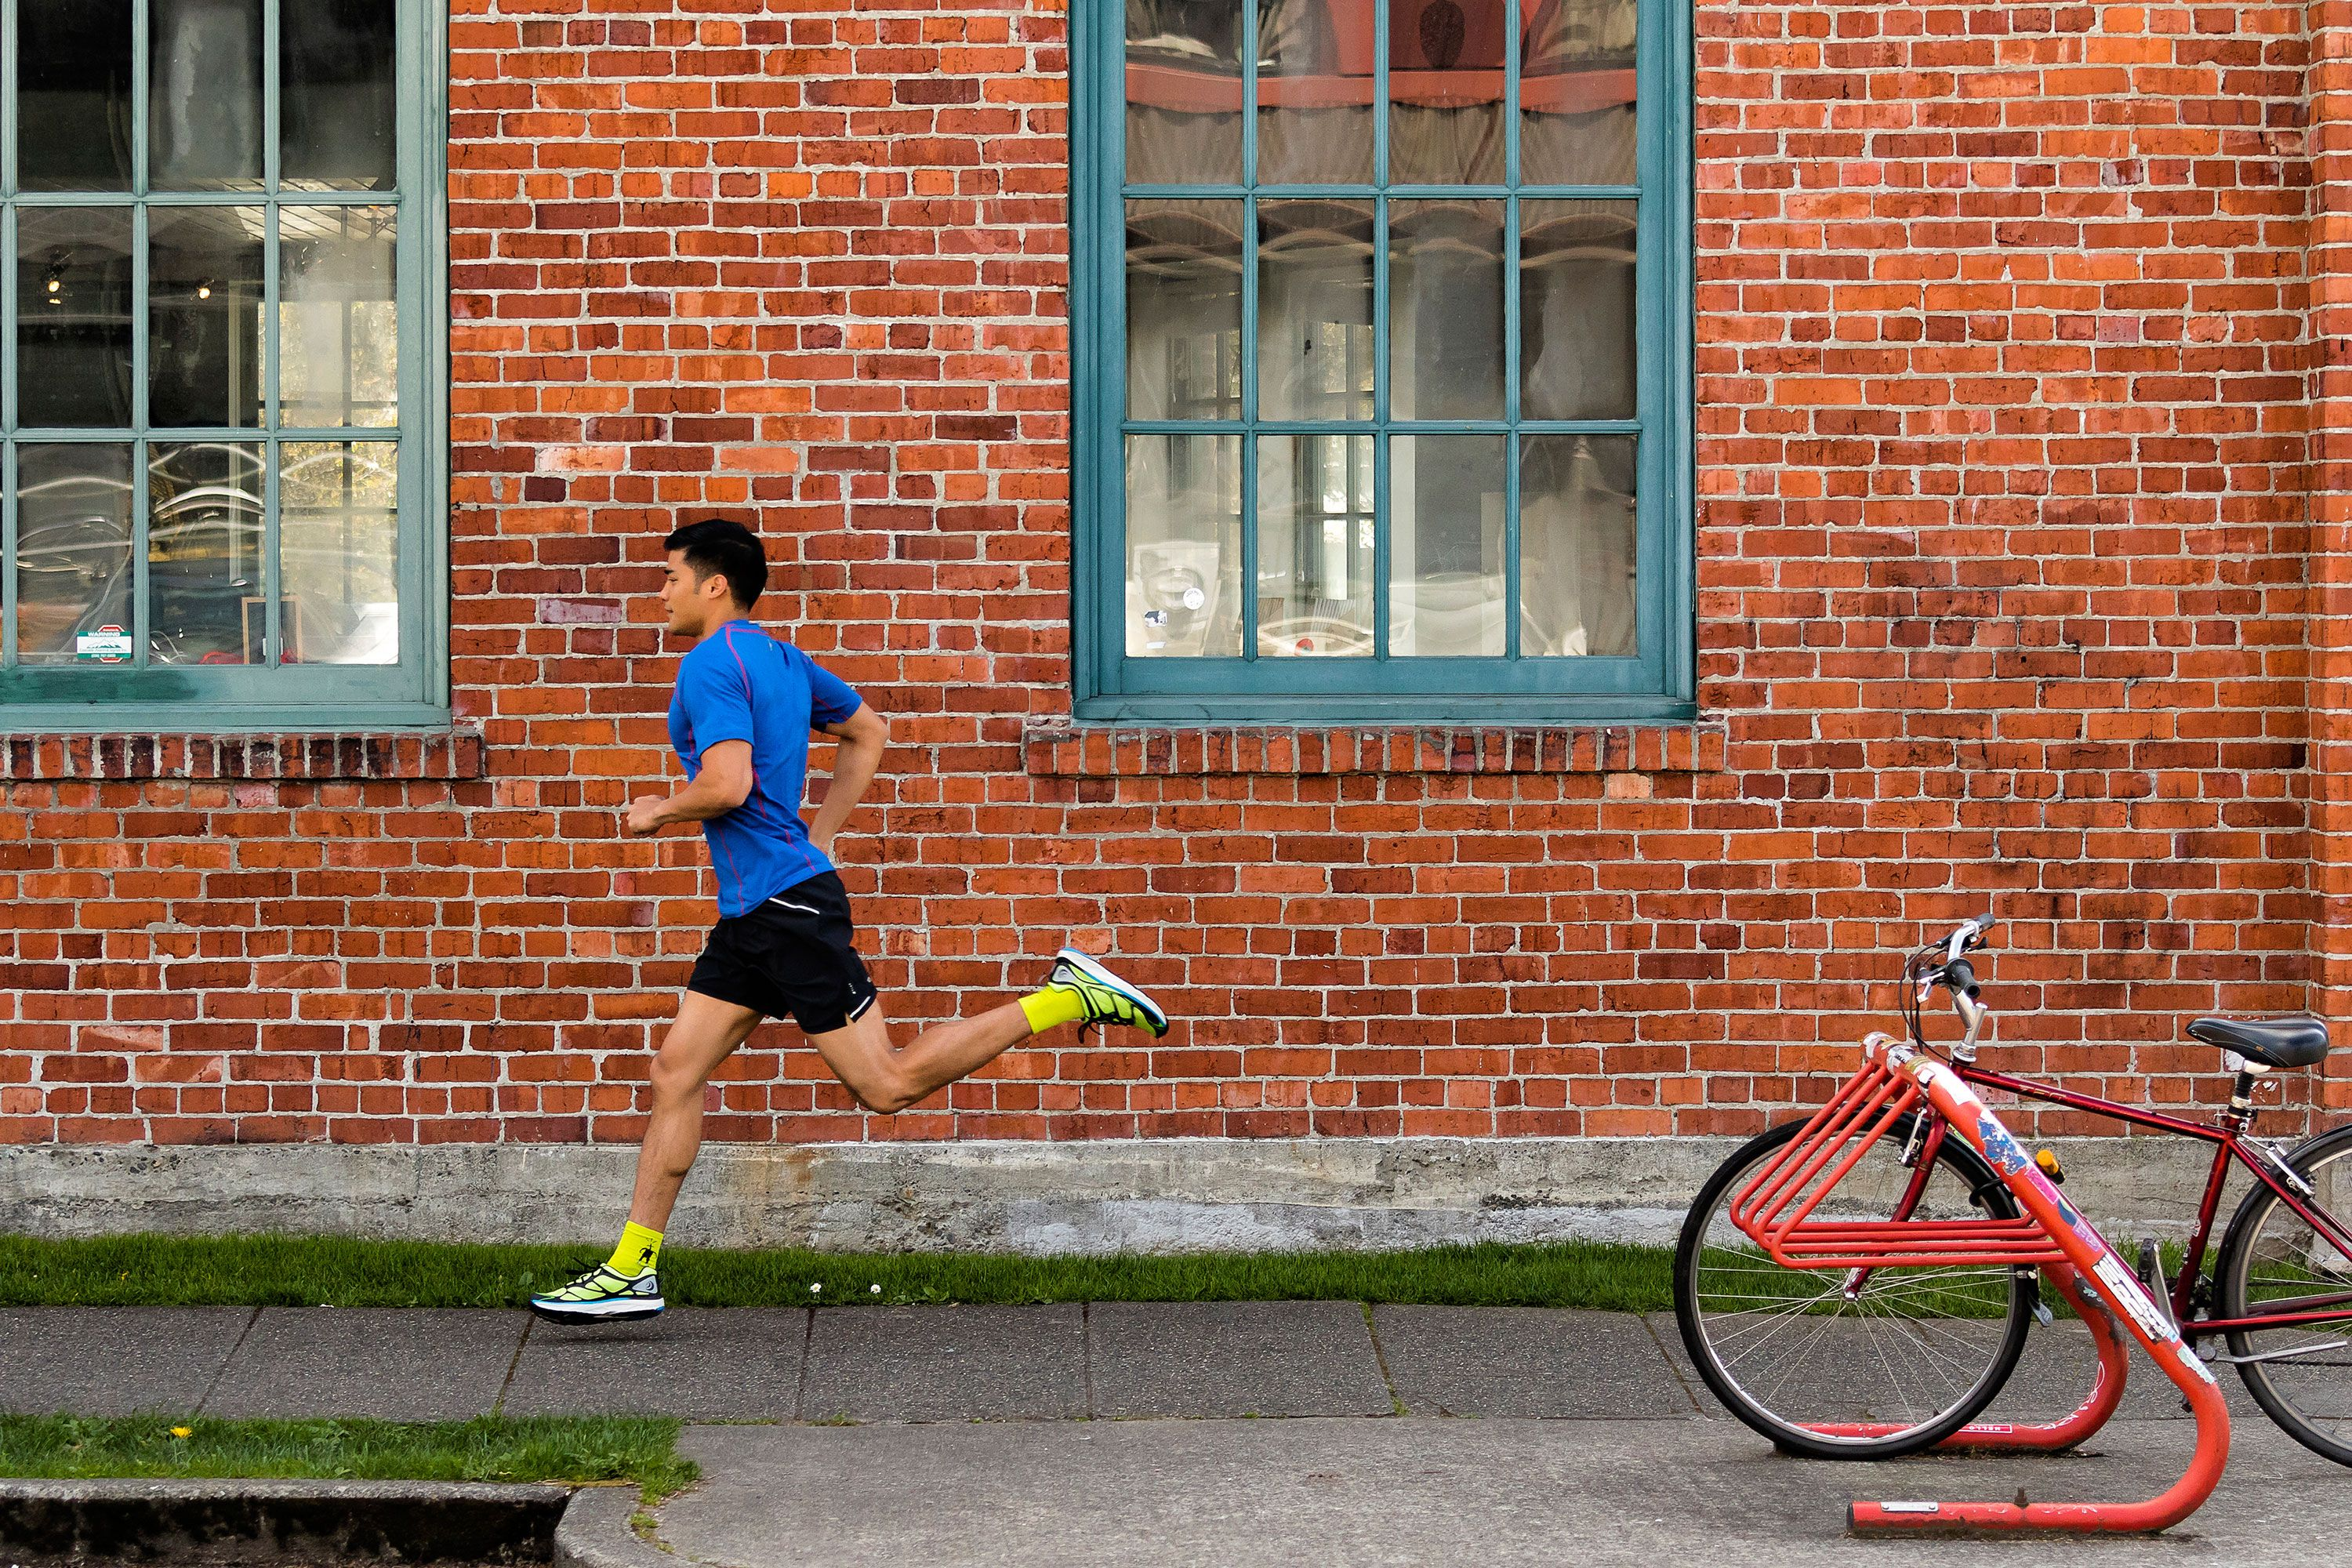 Sprints, Strides, and Surges Can Make You Faster